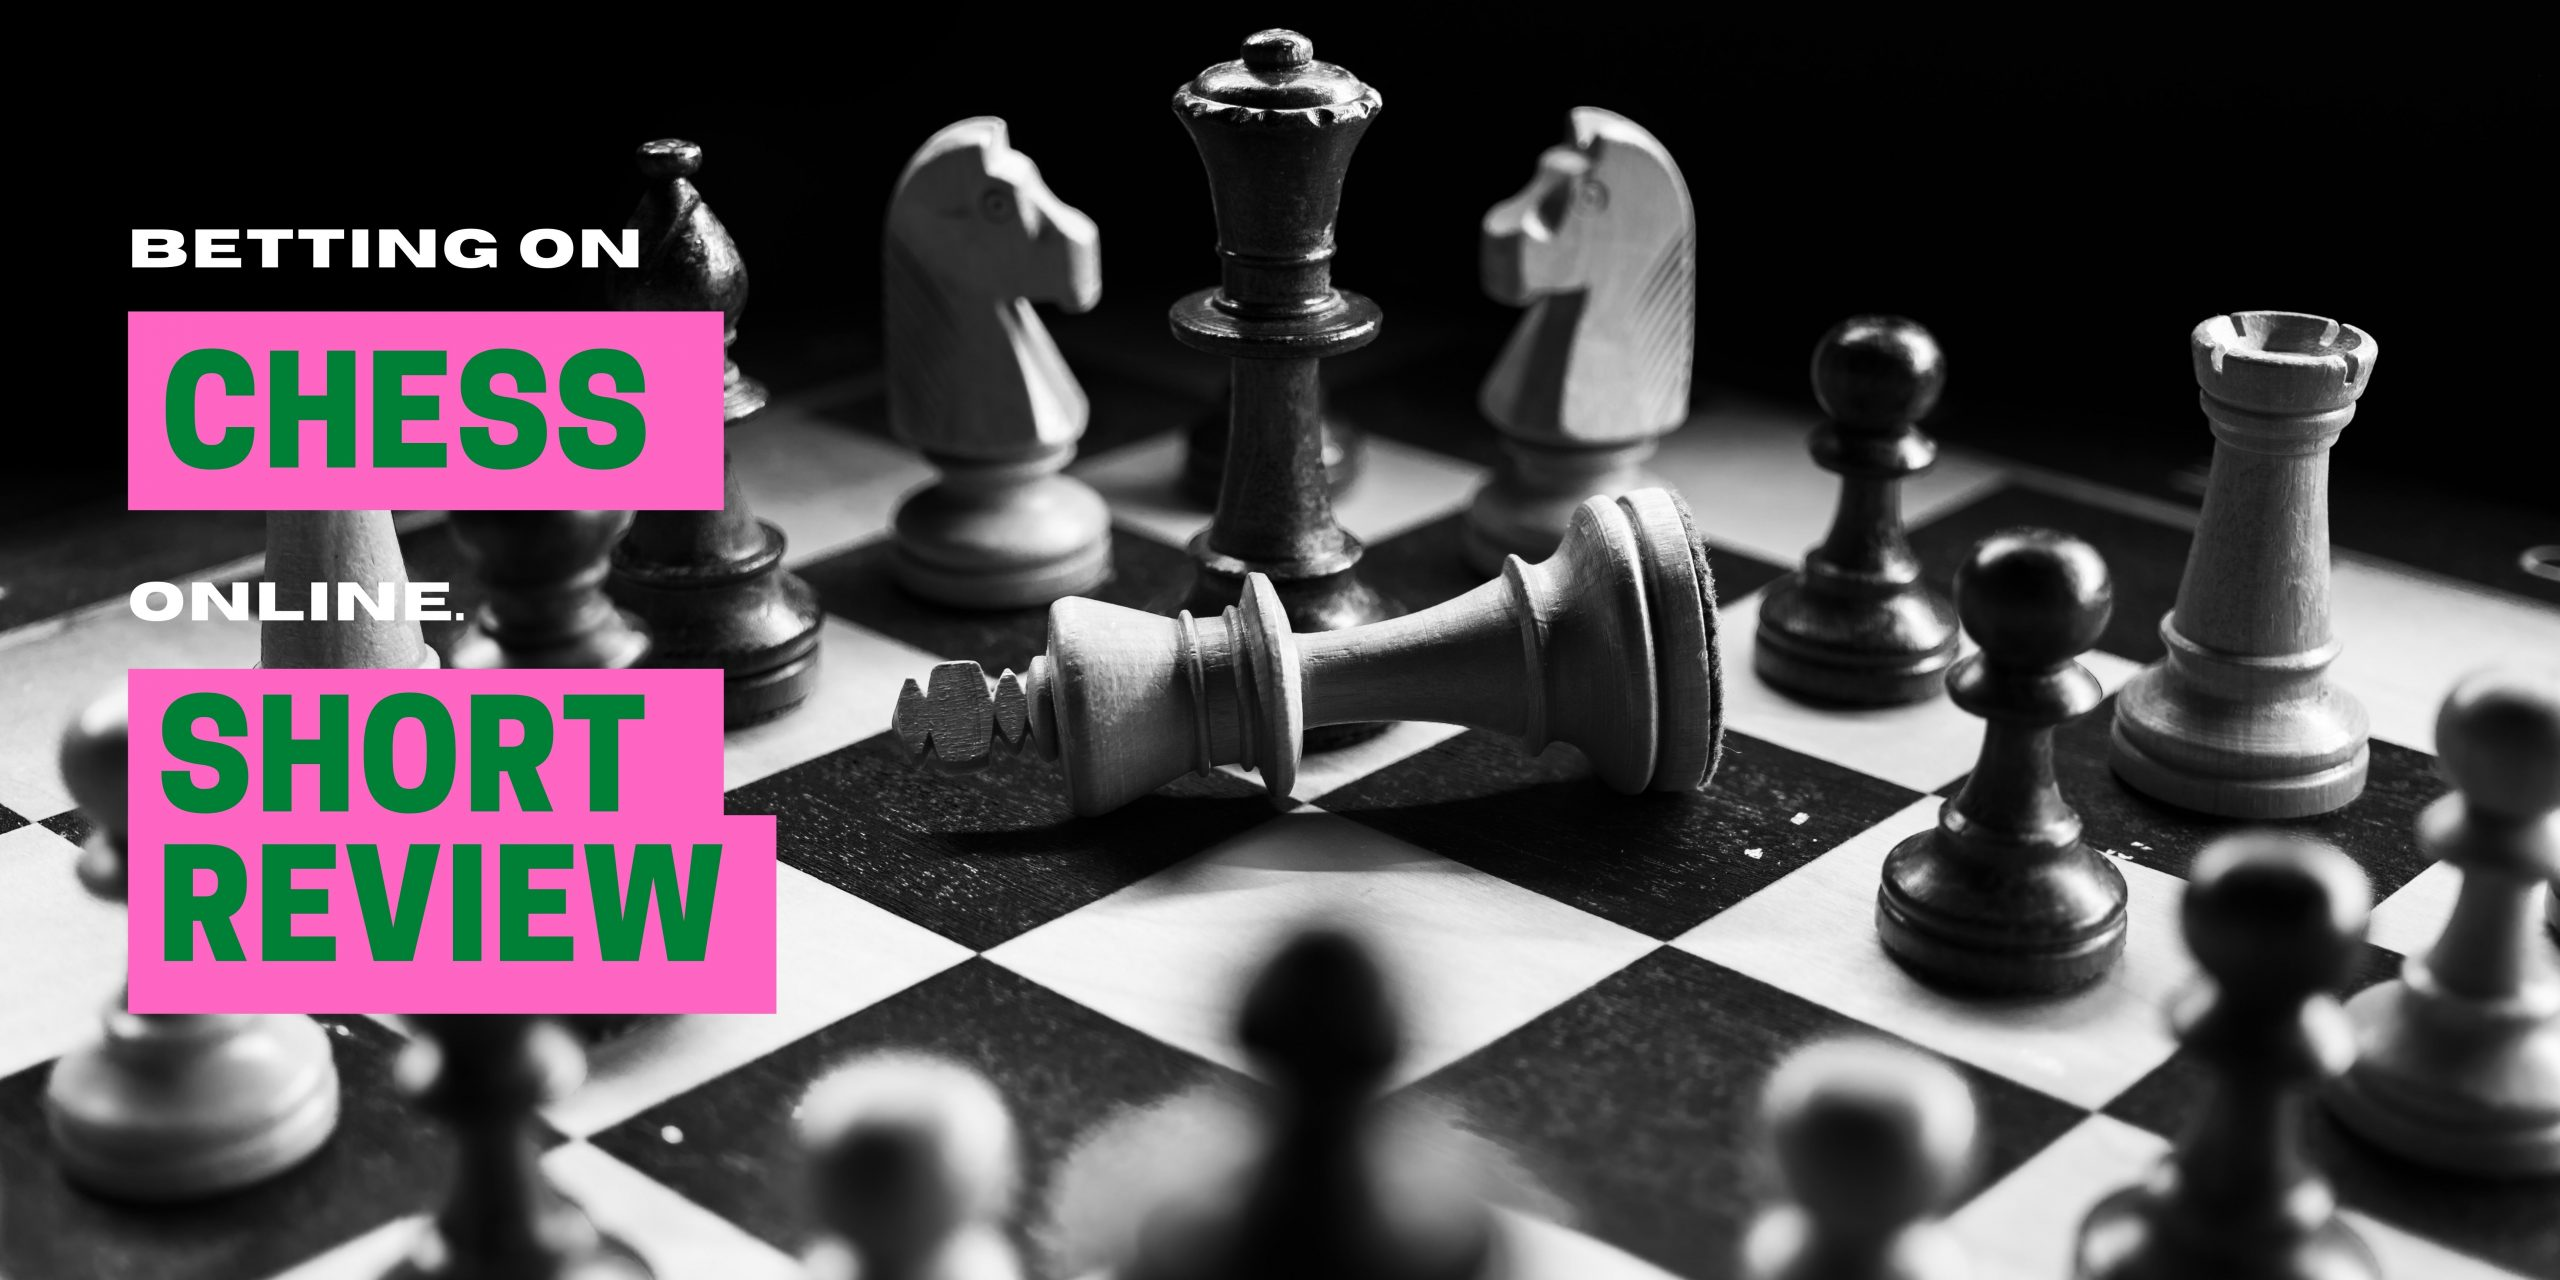 Betting on chess online. Short review post thumbnail image